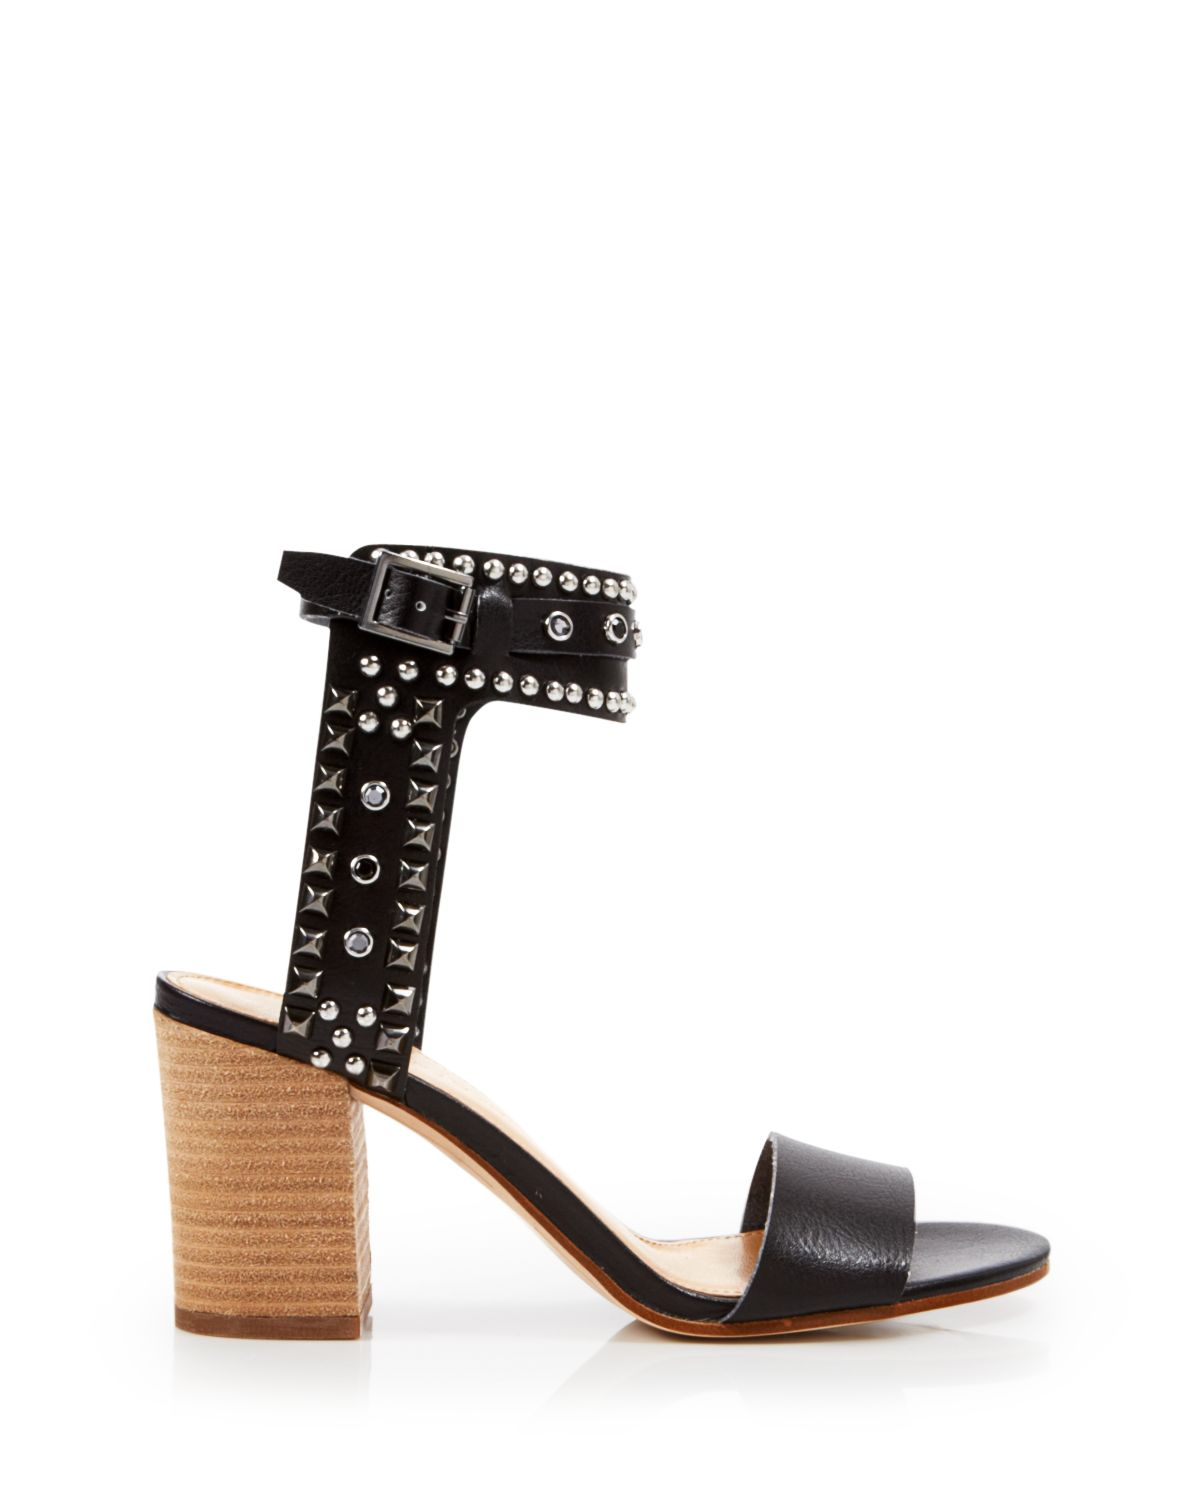 7fabb6e594d Lyst - Enzo Angiolini Ankle Strap Sandals - Glittax Studded Chunky ...